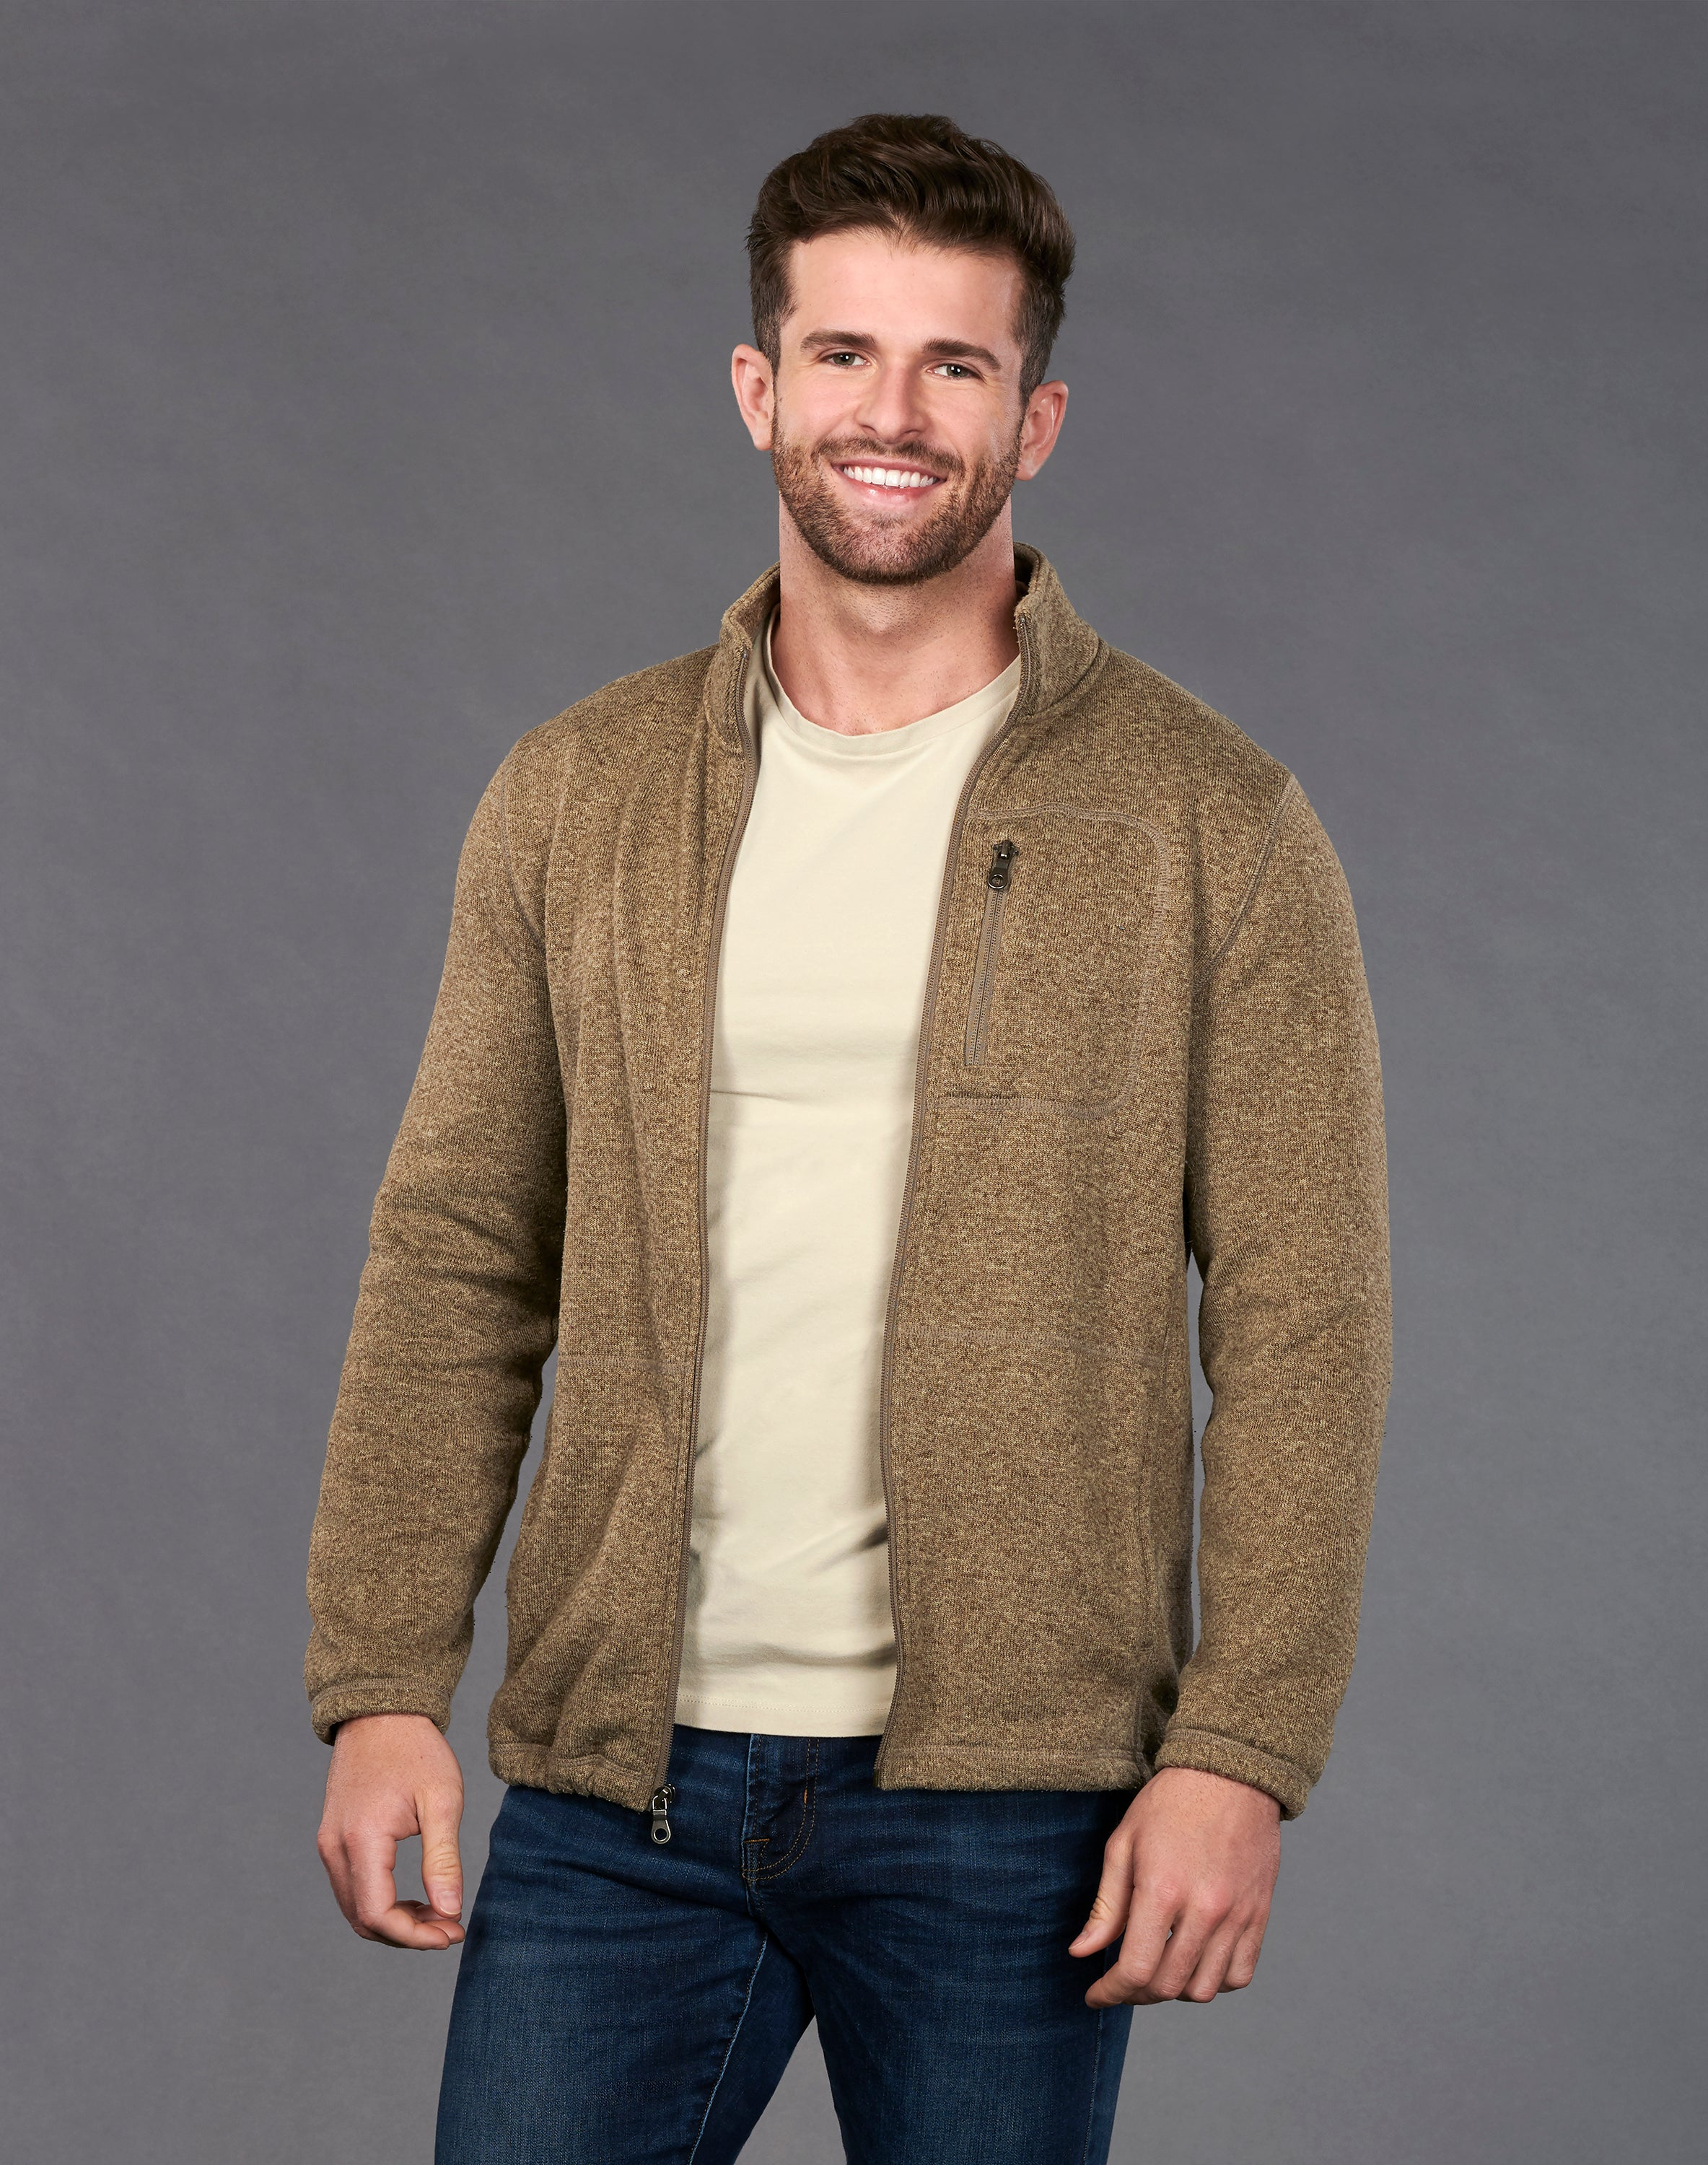 The Bachelorette': See Jed Wyatt's Alleged 'I Love You' Text